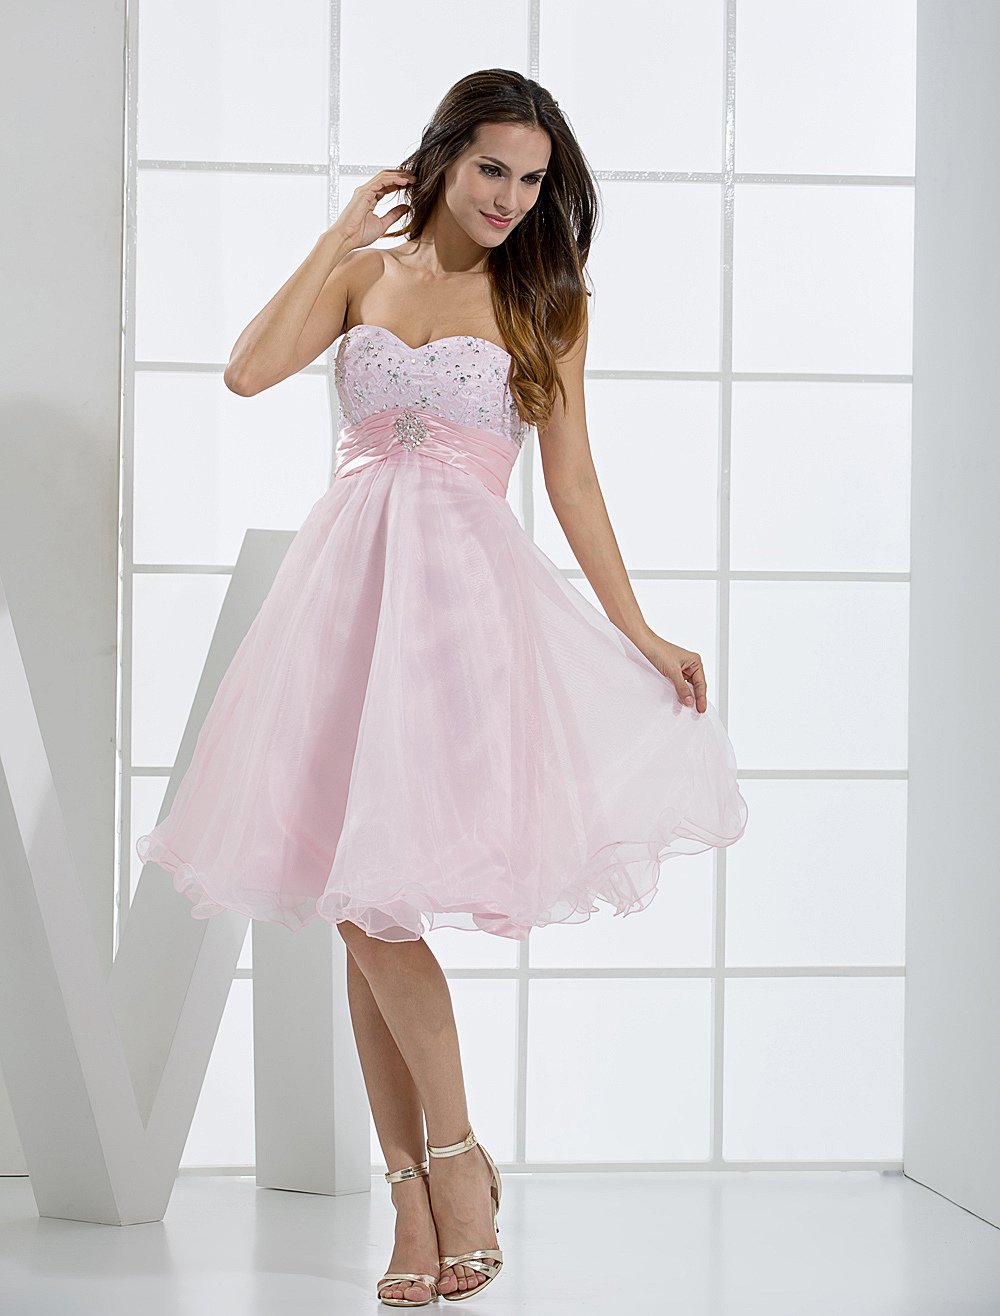 Knee-Length Homecoming Dress With Beaded Sweetheart Neck